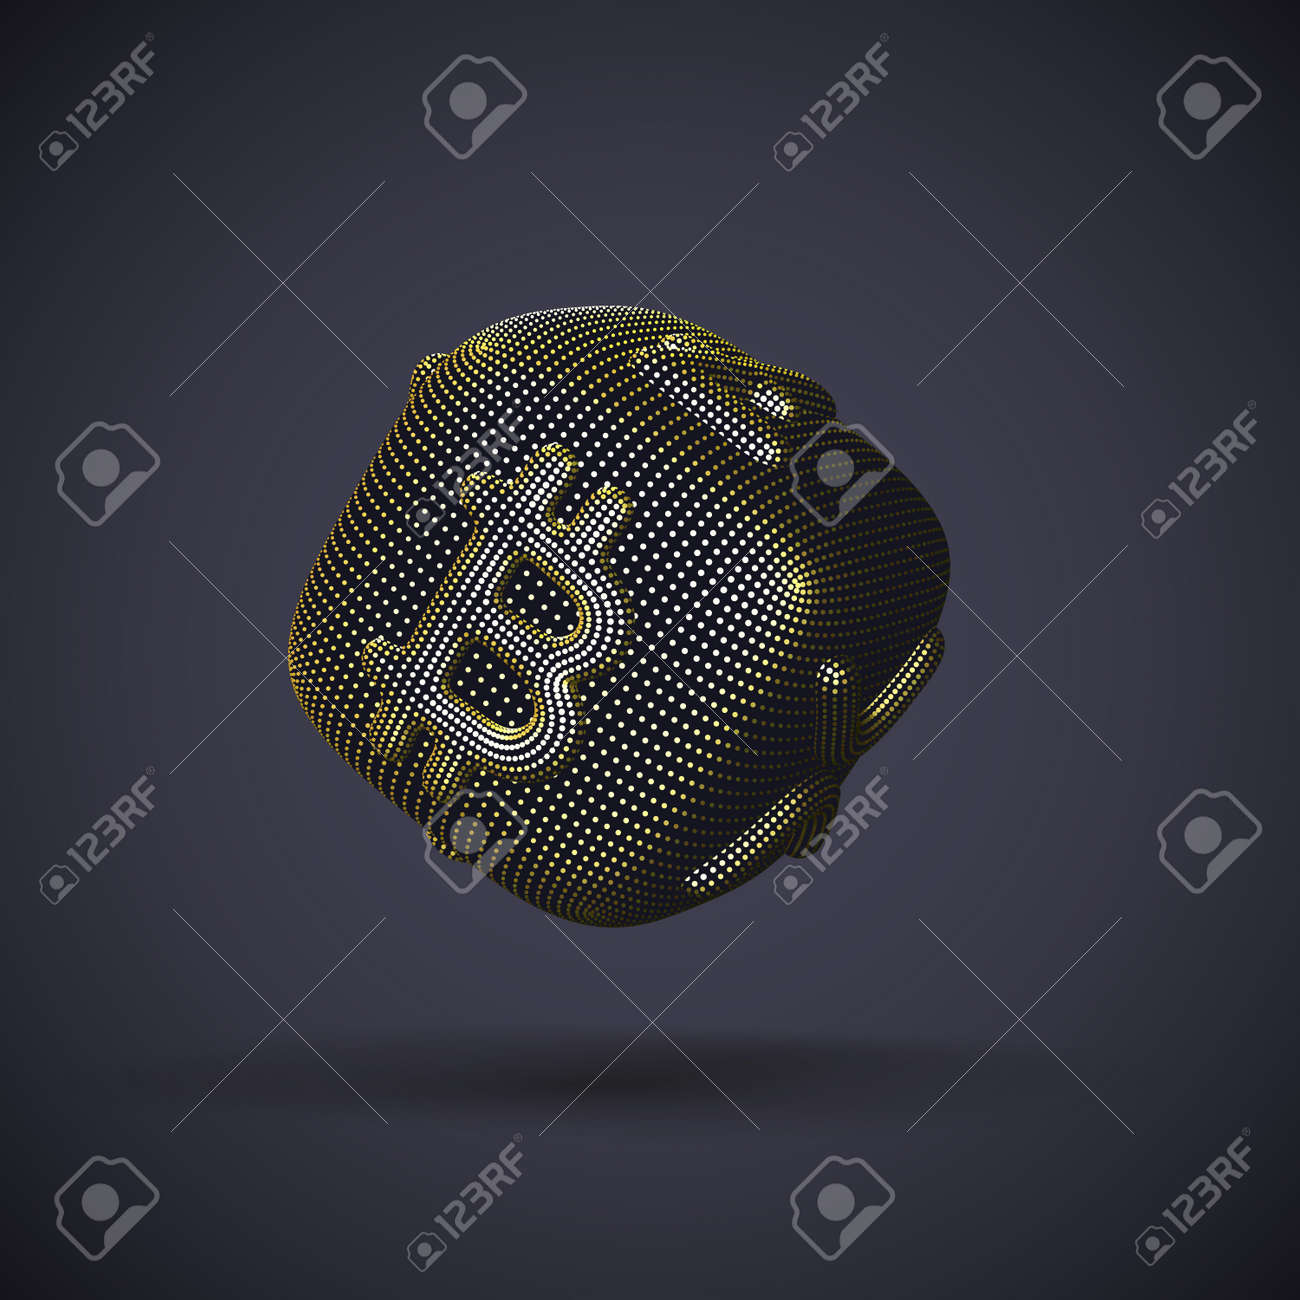 Digital golden 3D dice with cryptocurrency logos Bitcoin, Litecoin and Ripple on gray background. Concept of luck and fortune in crypto investing and stock exchange trading. Vector illustration - 162069127